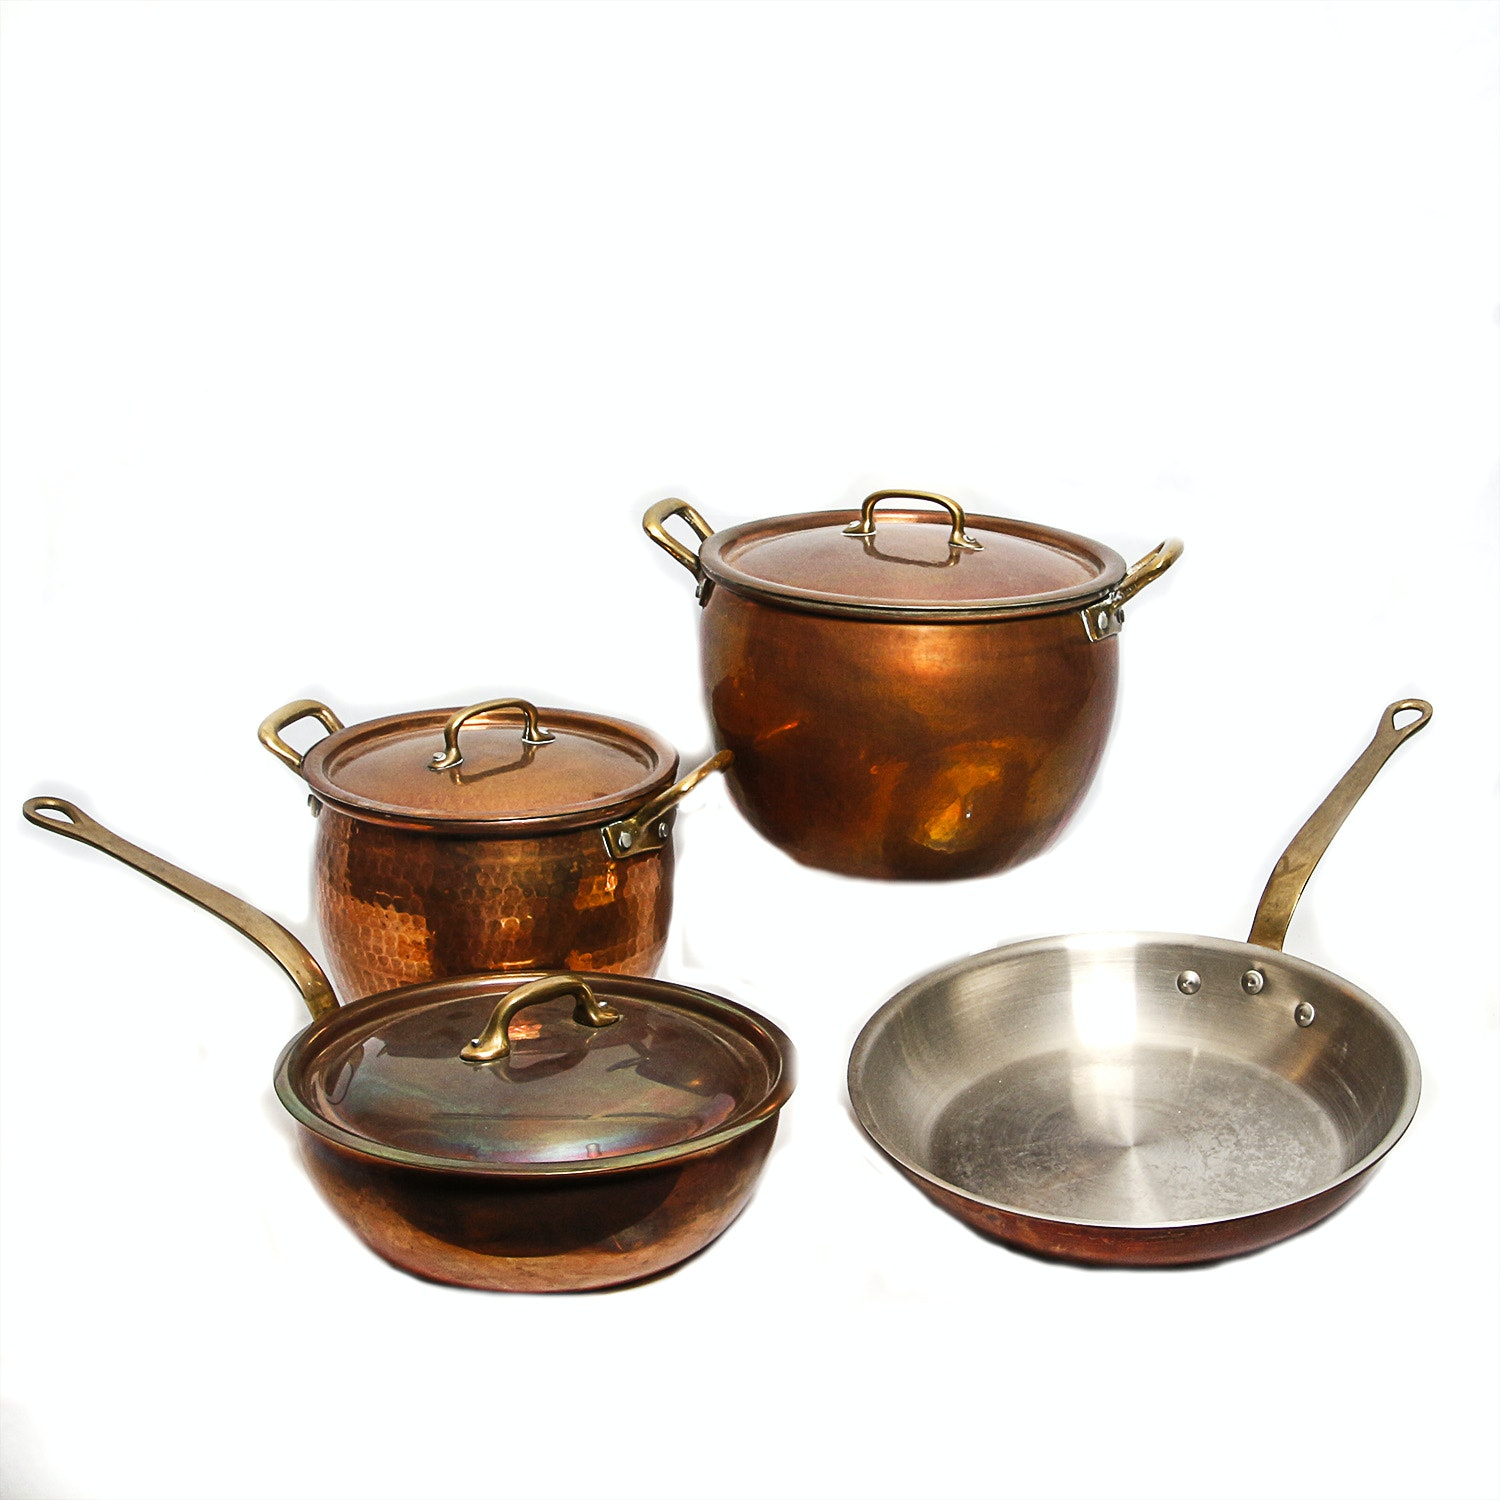 Copper Pots From Williams-Sonoma and Ruffoni Italy